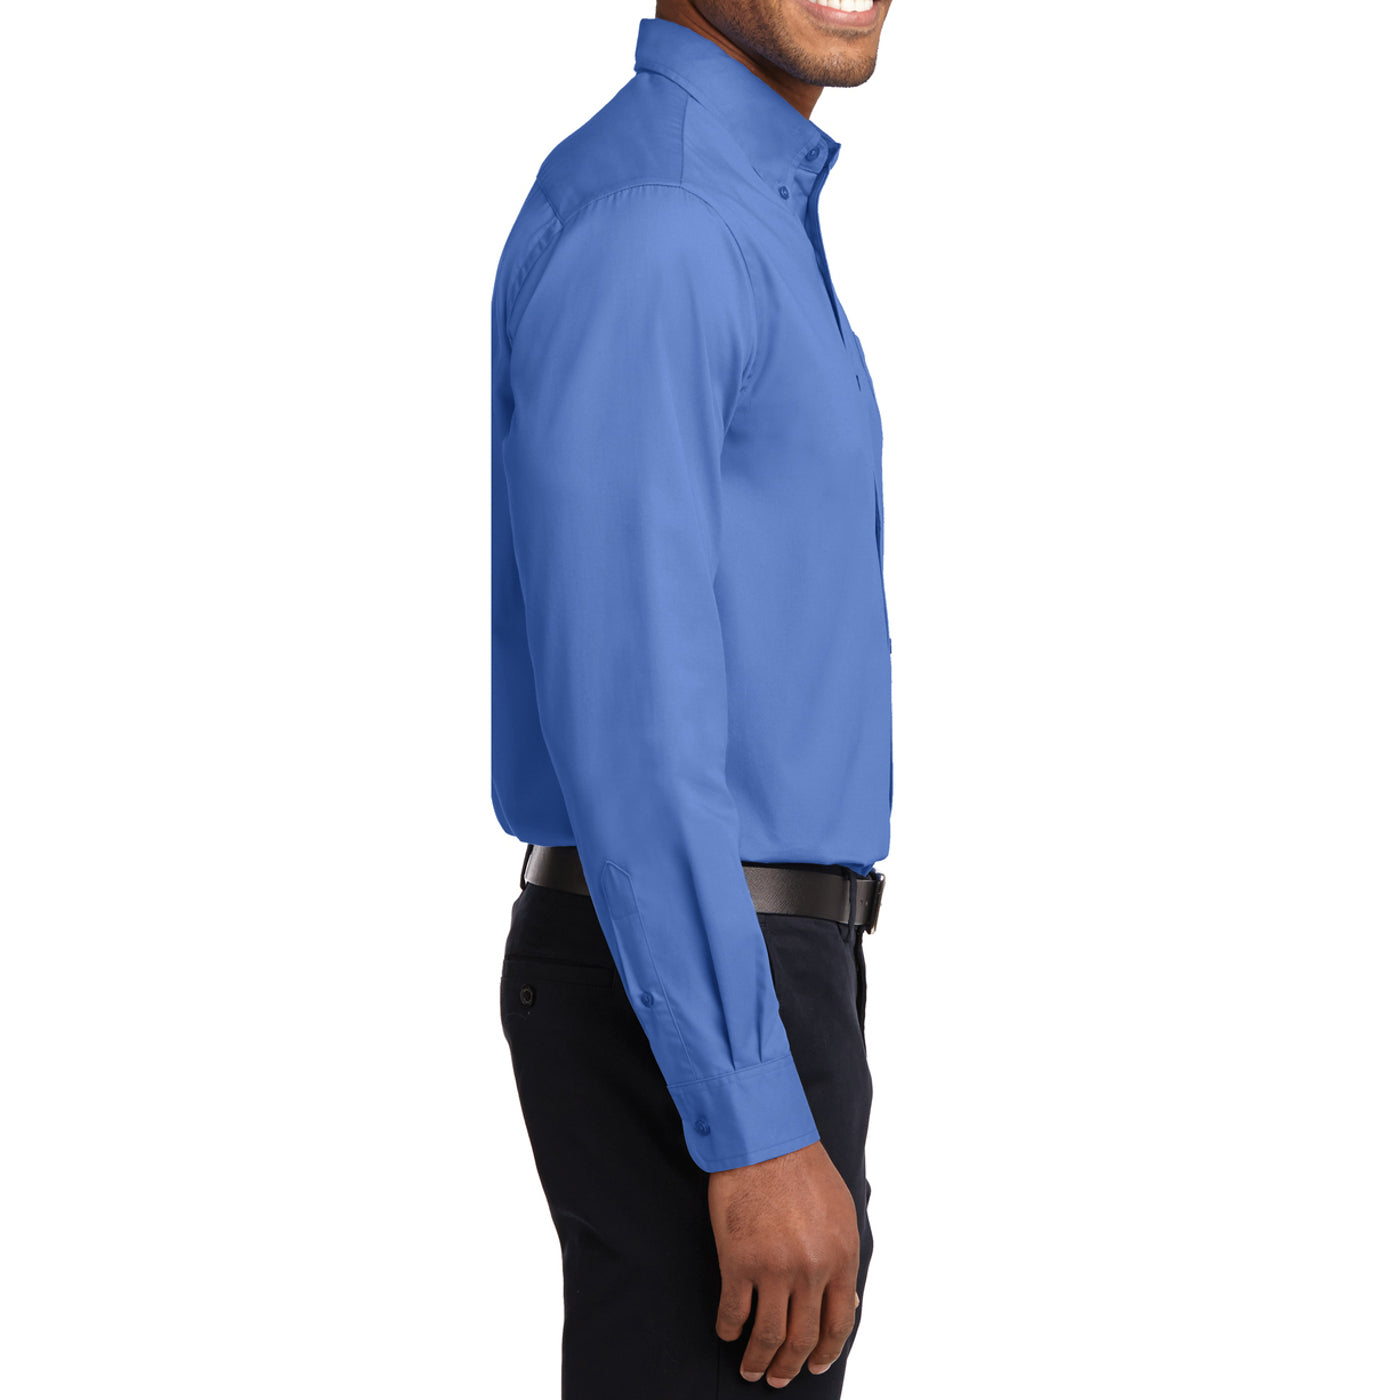 Men's Long Sleeve Easy Care Shirt - Ultramarine Blue - Side